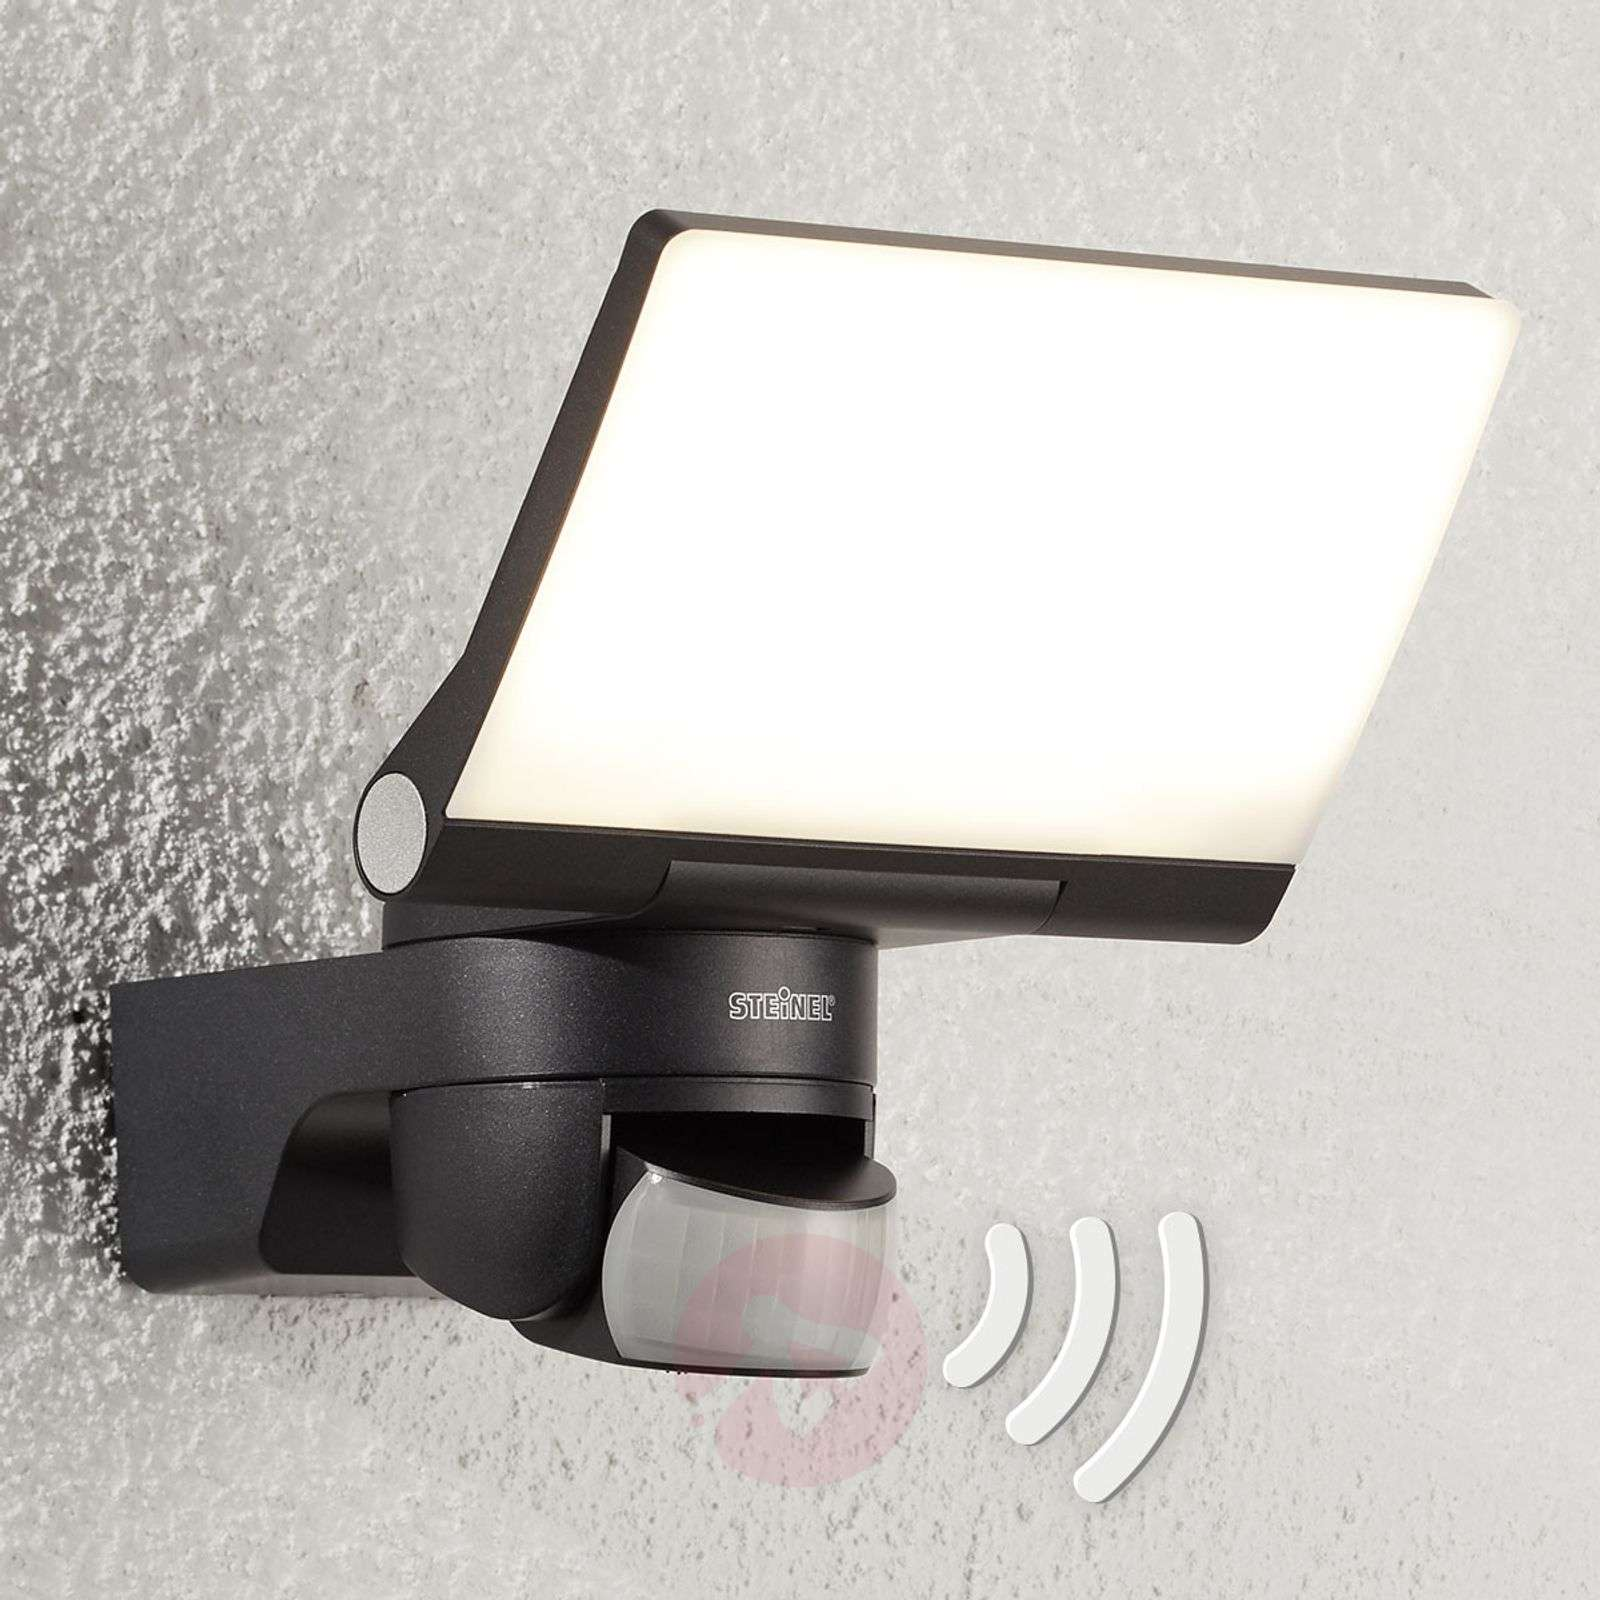 Wall Lights With Sensor : LED wall light XLED HOME 2 with motion sensor Lights.co.uk